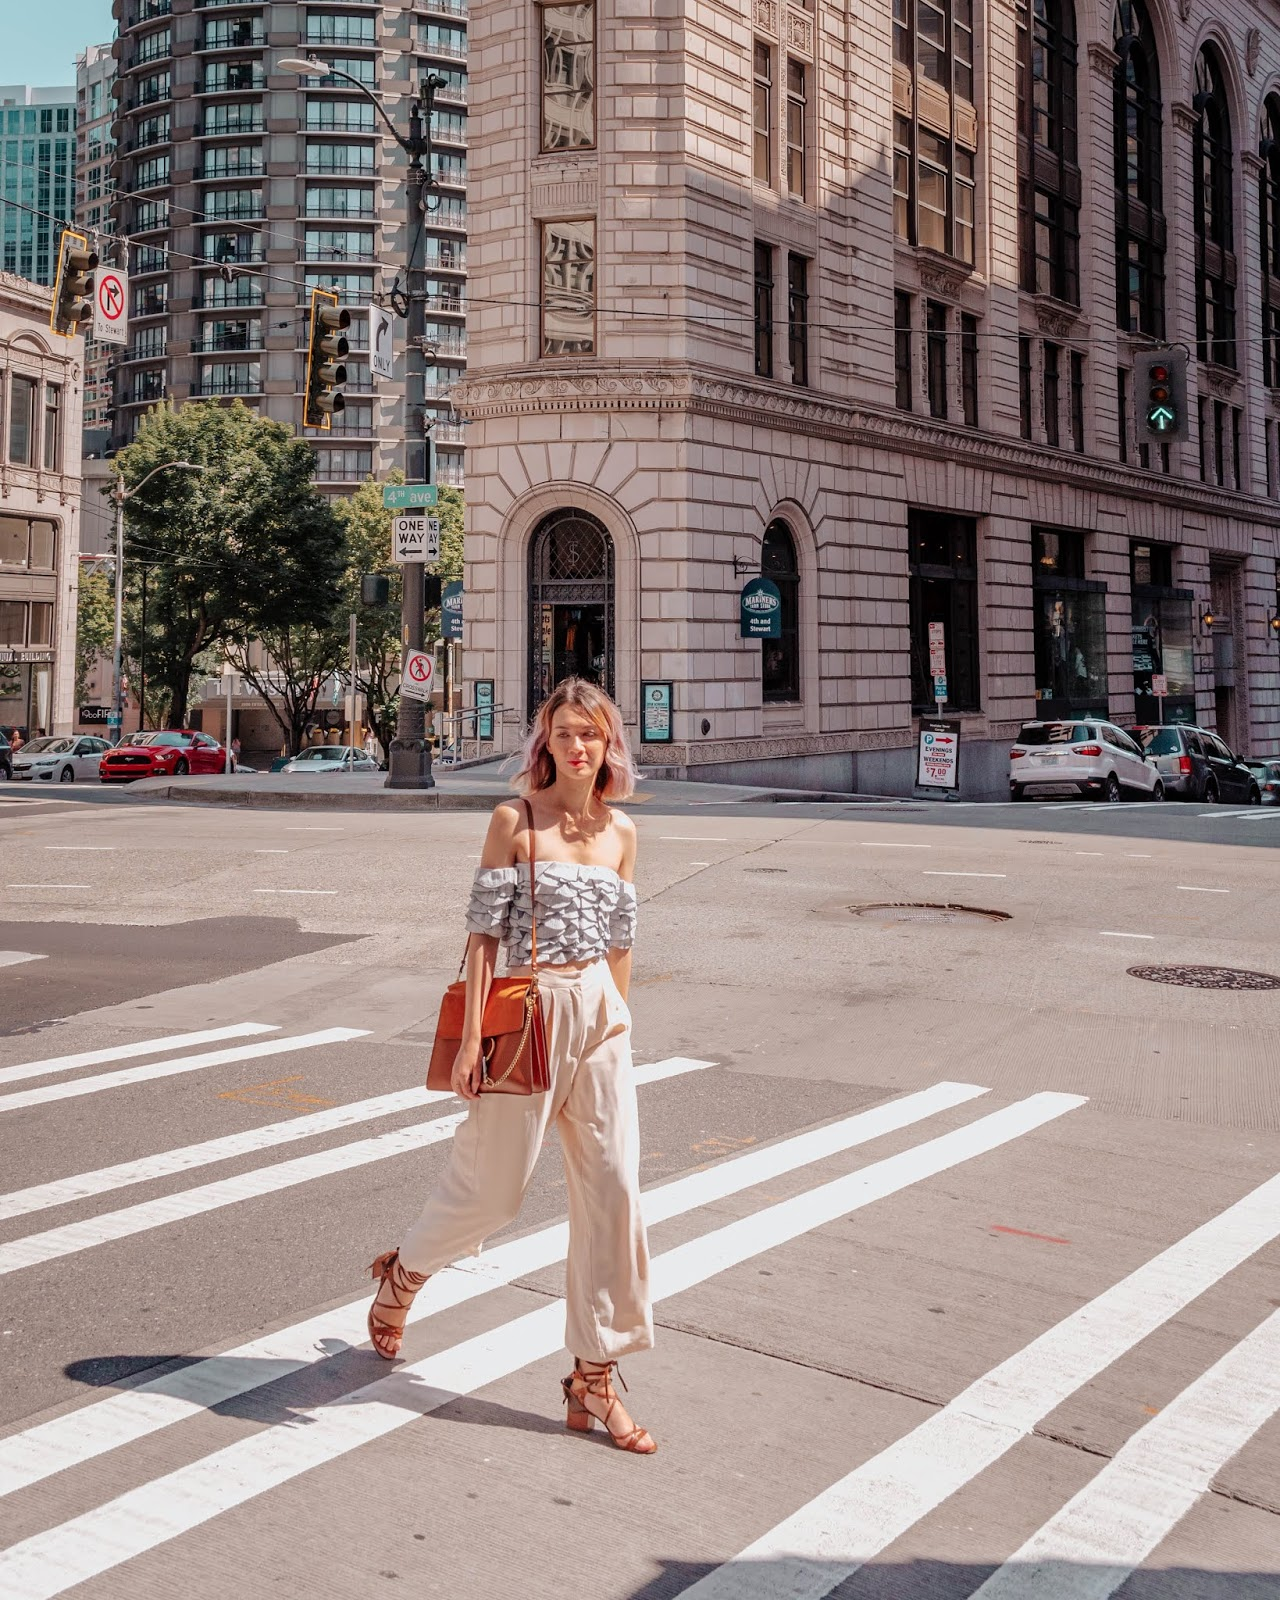 seattle, pike place, travel guide, things to do, travel blogger, travel girl, fashion blogger, mermaid top, club monaco, chloe faye, chriselle x joa